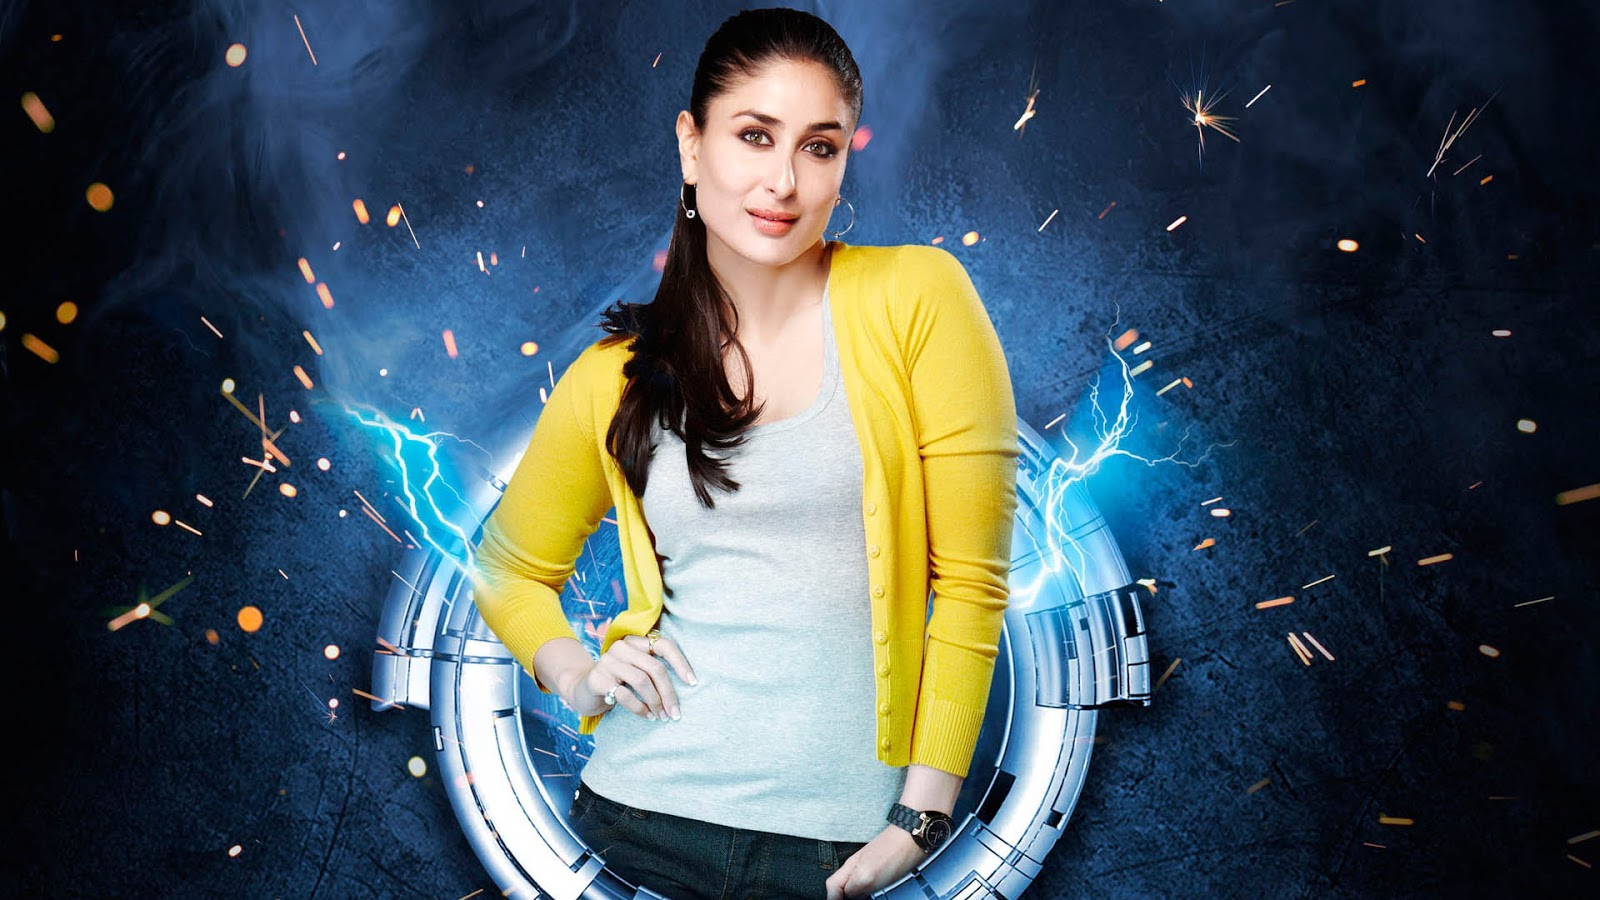 Fall Pictures For Desktop Wallpaper Kareena Kapoor Wallpaper Desktop Wallpapers